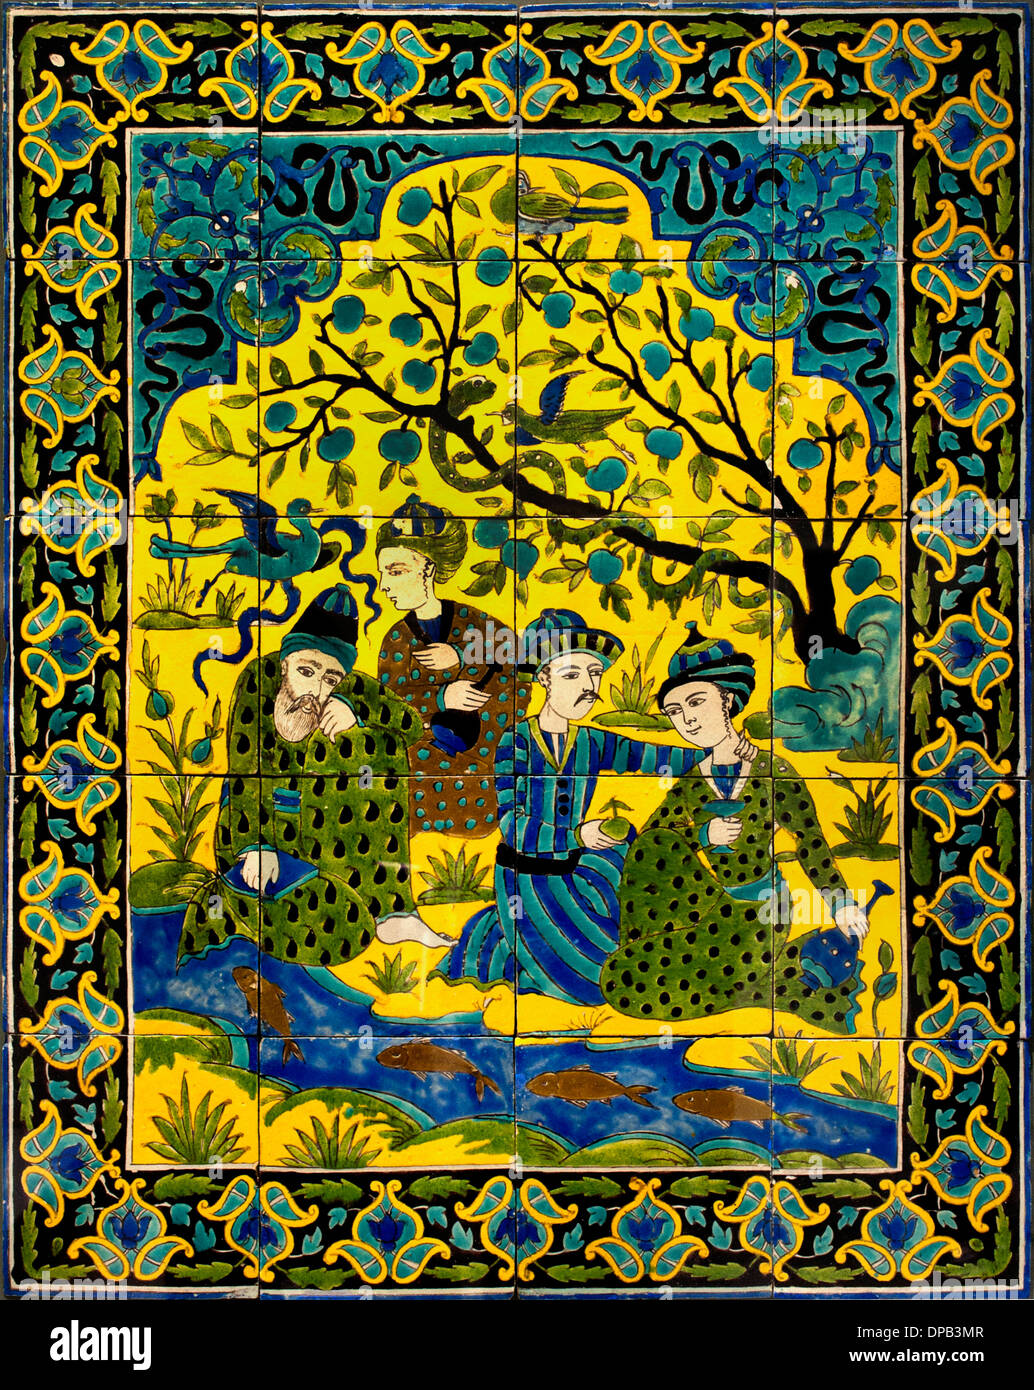 Panel siding: an assembly of mystical 1700-1800 Iran to ceramic decor black lines and colored glazes tile tiles Peria Persian Ir - Stock Image